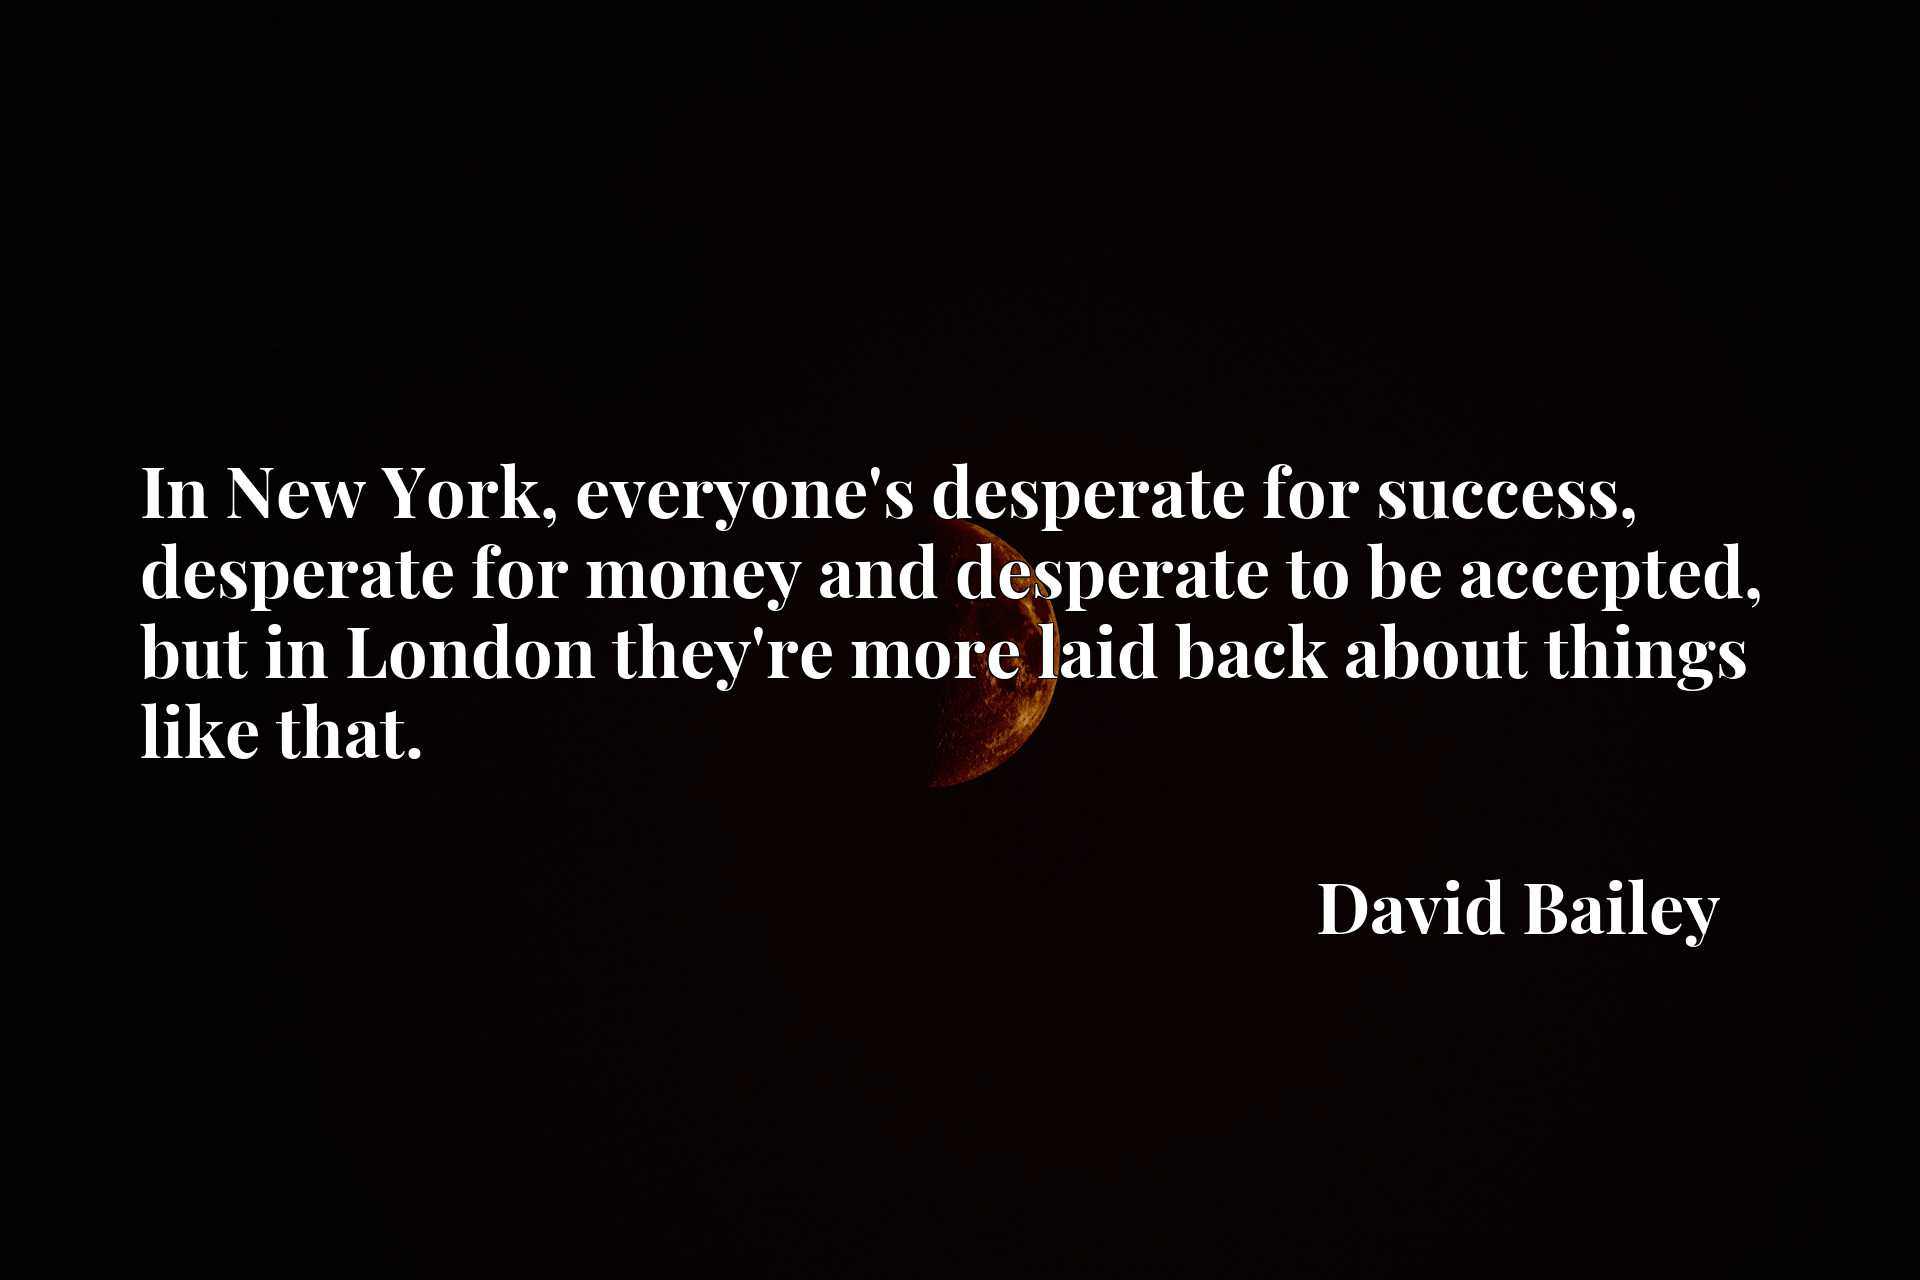 In New York, everyone's desperate for success, desperate for money and desperate to be accepted, but in London they're more laid back about things like that.